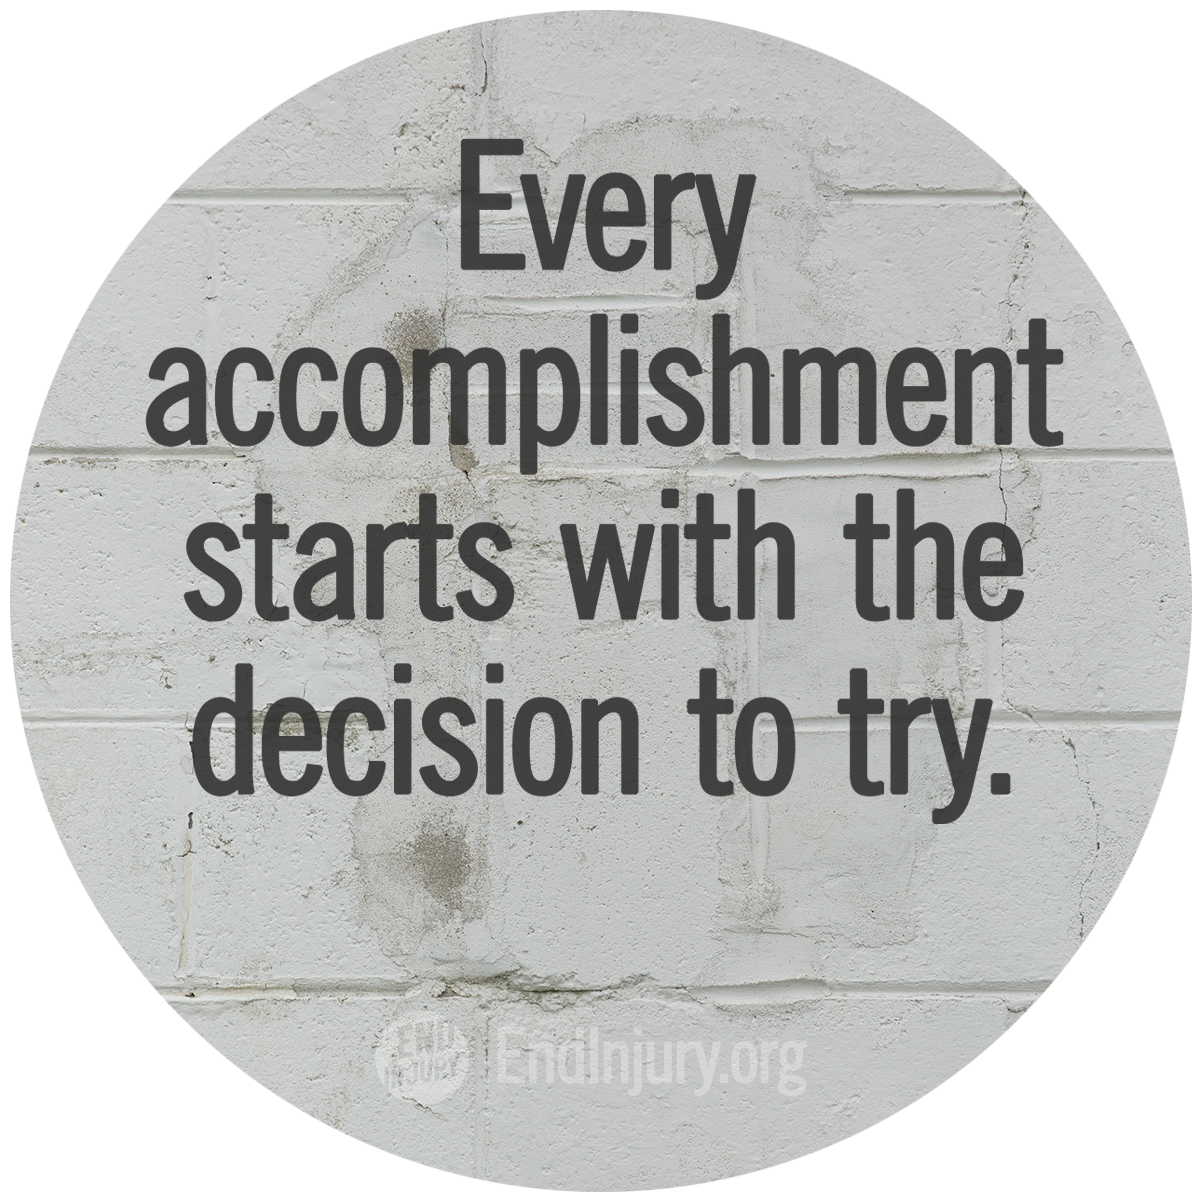 accomplishment-decision-try-quote.png